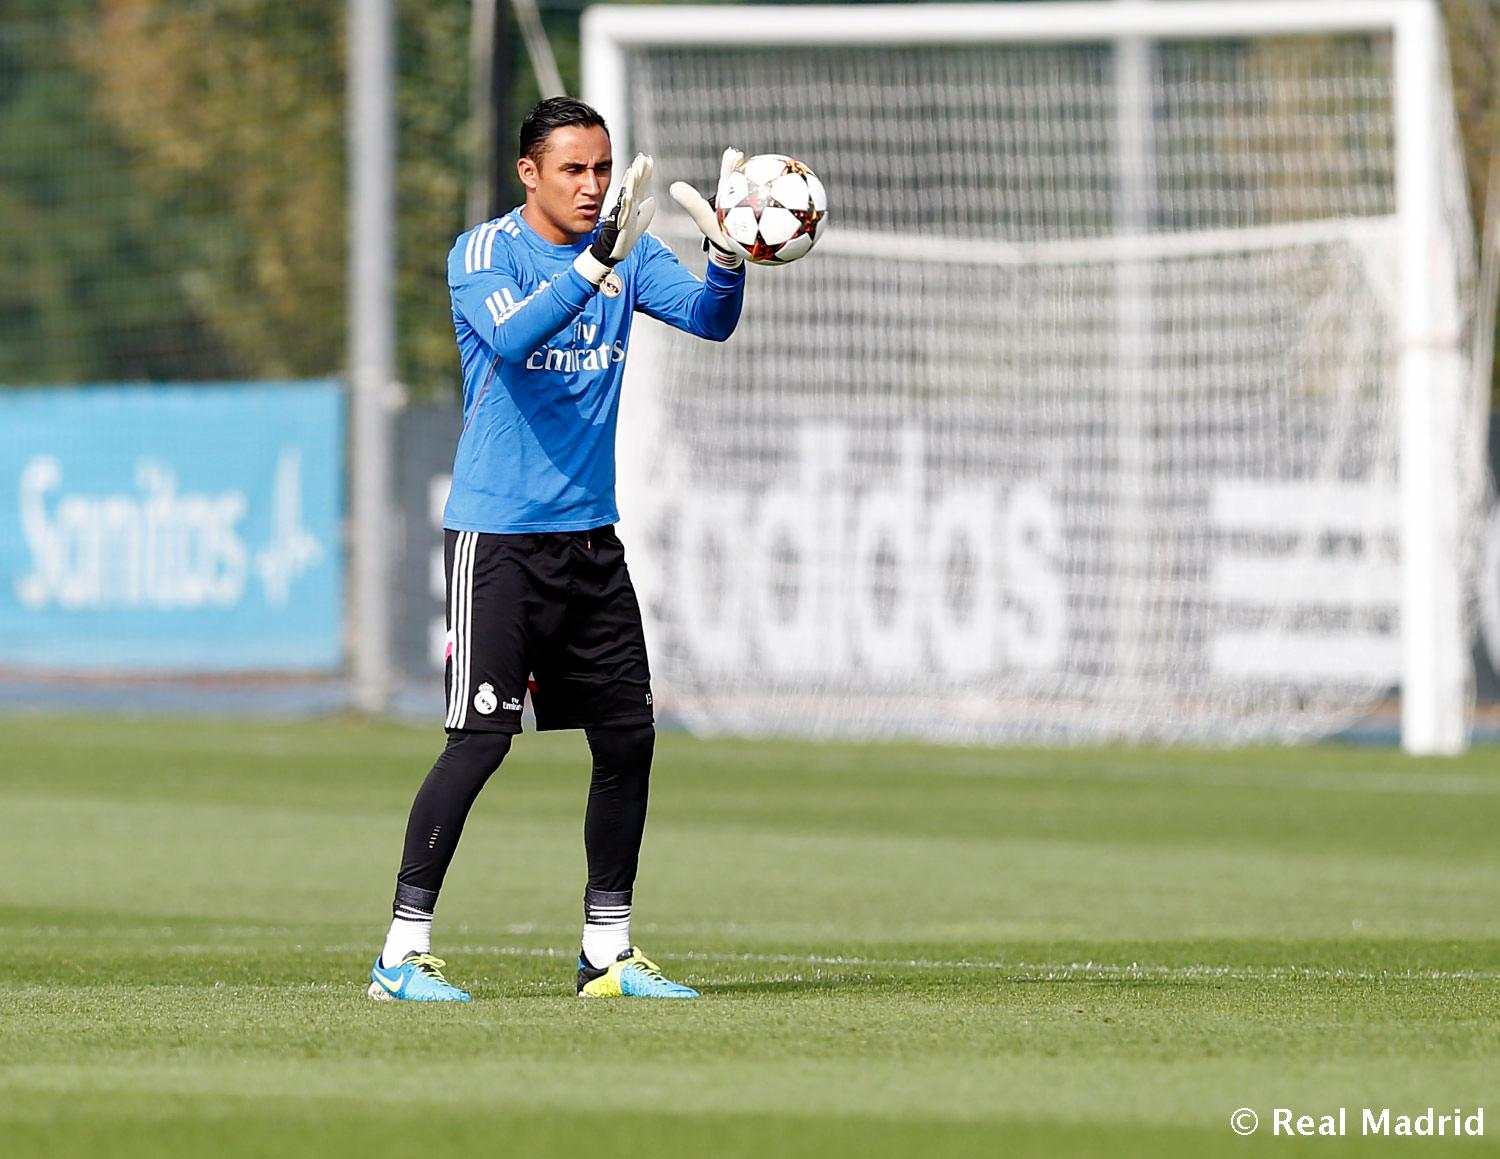 Real Madrid - Entrenamiento del Real Madrid - 29-09-2014